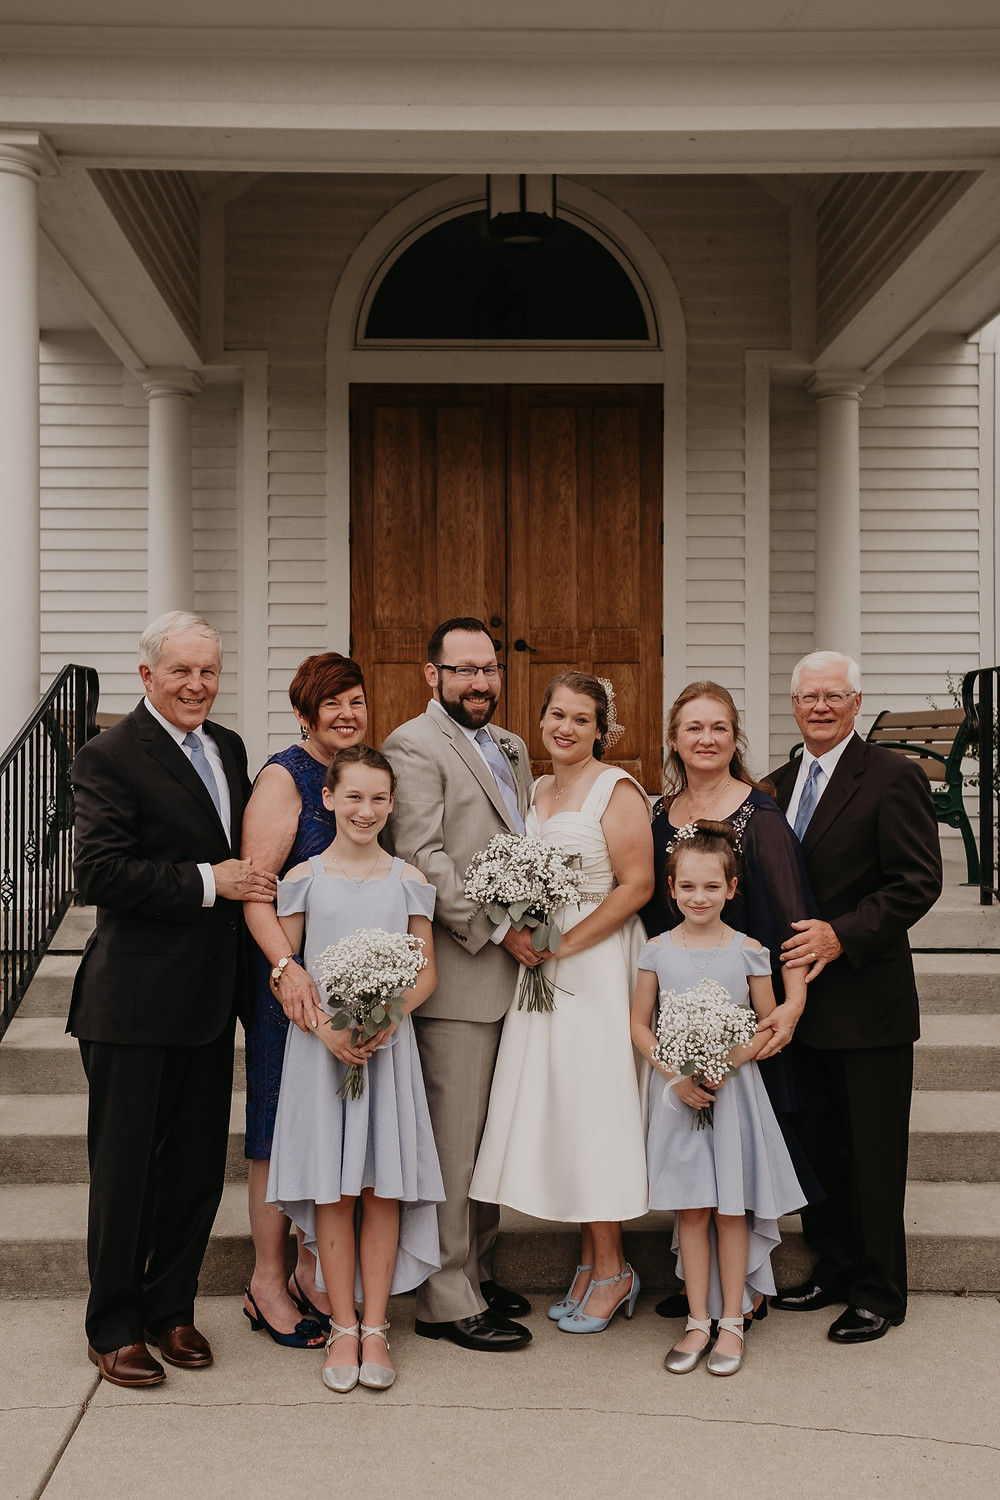 Family portraits after Metro Detroit wedding ceremony. Photographed by Nicole Leanne Photography.